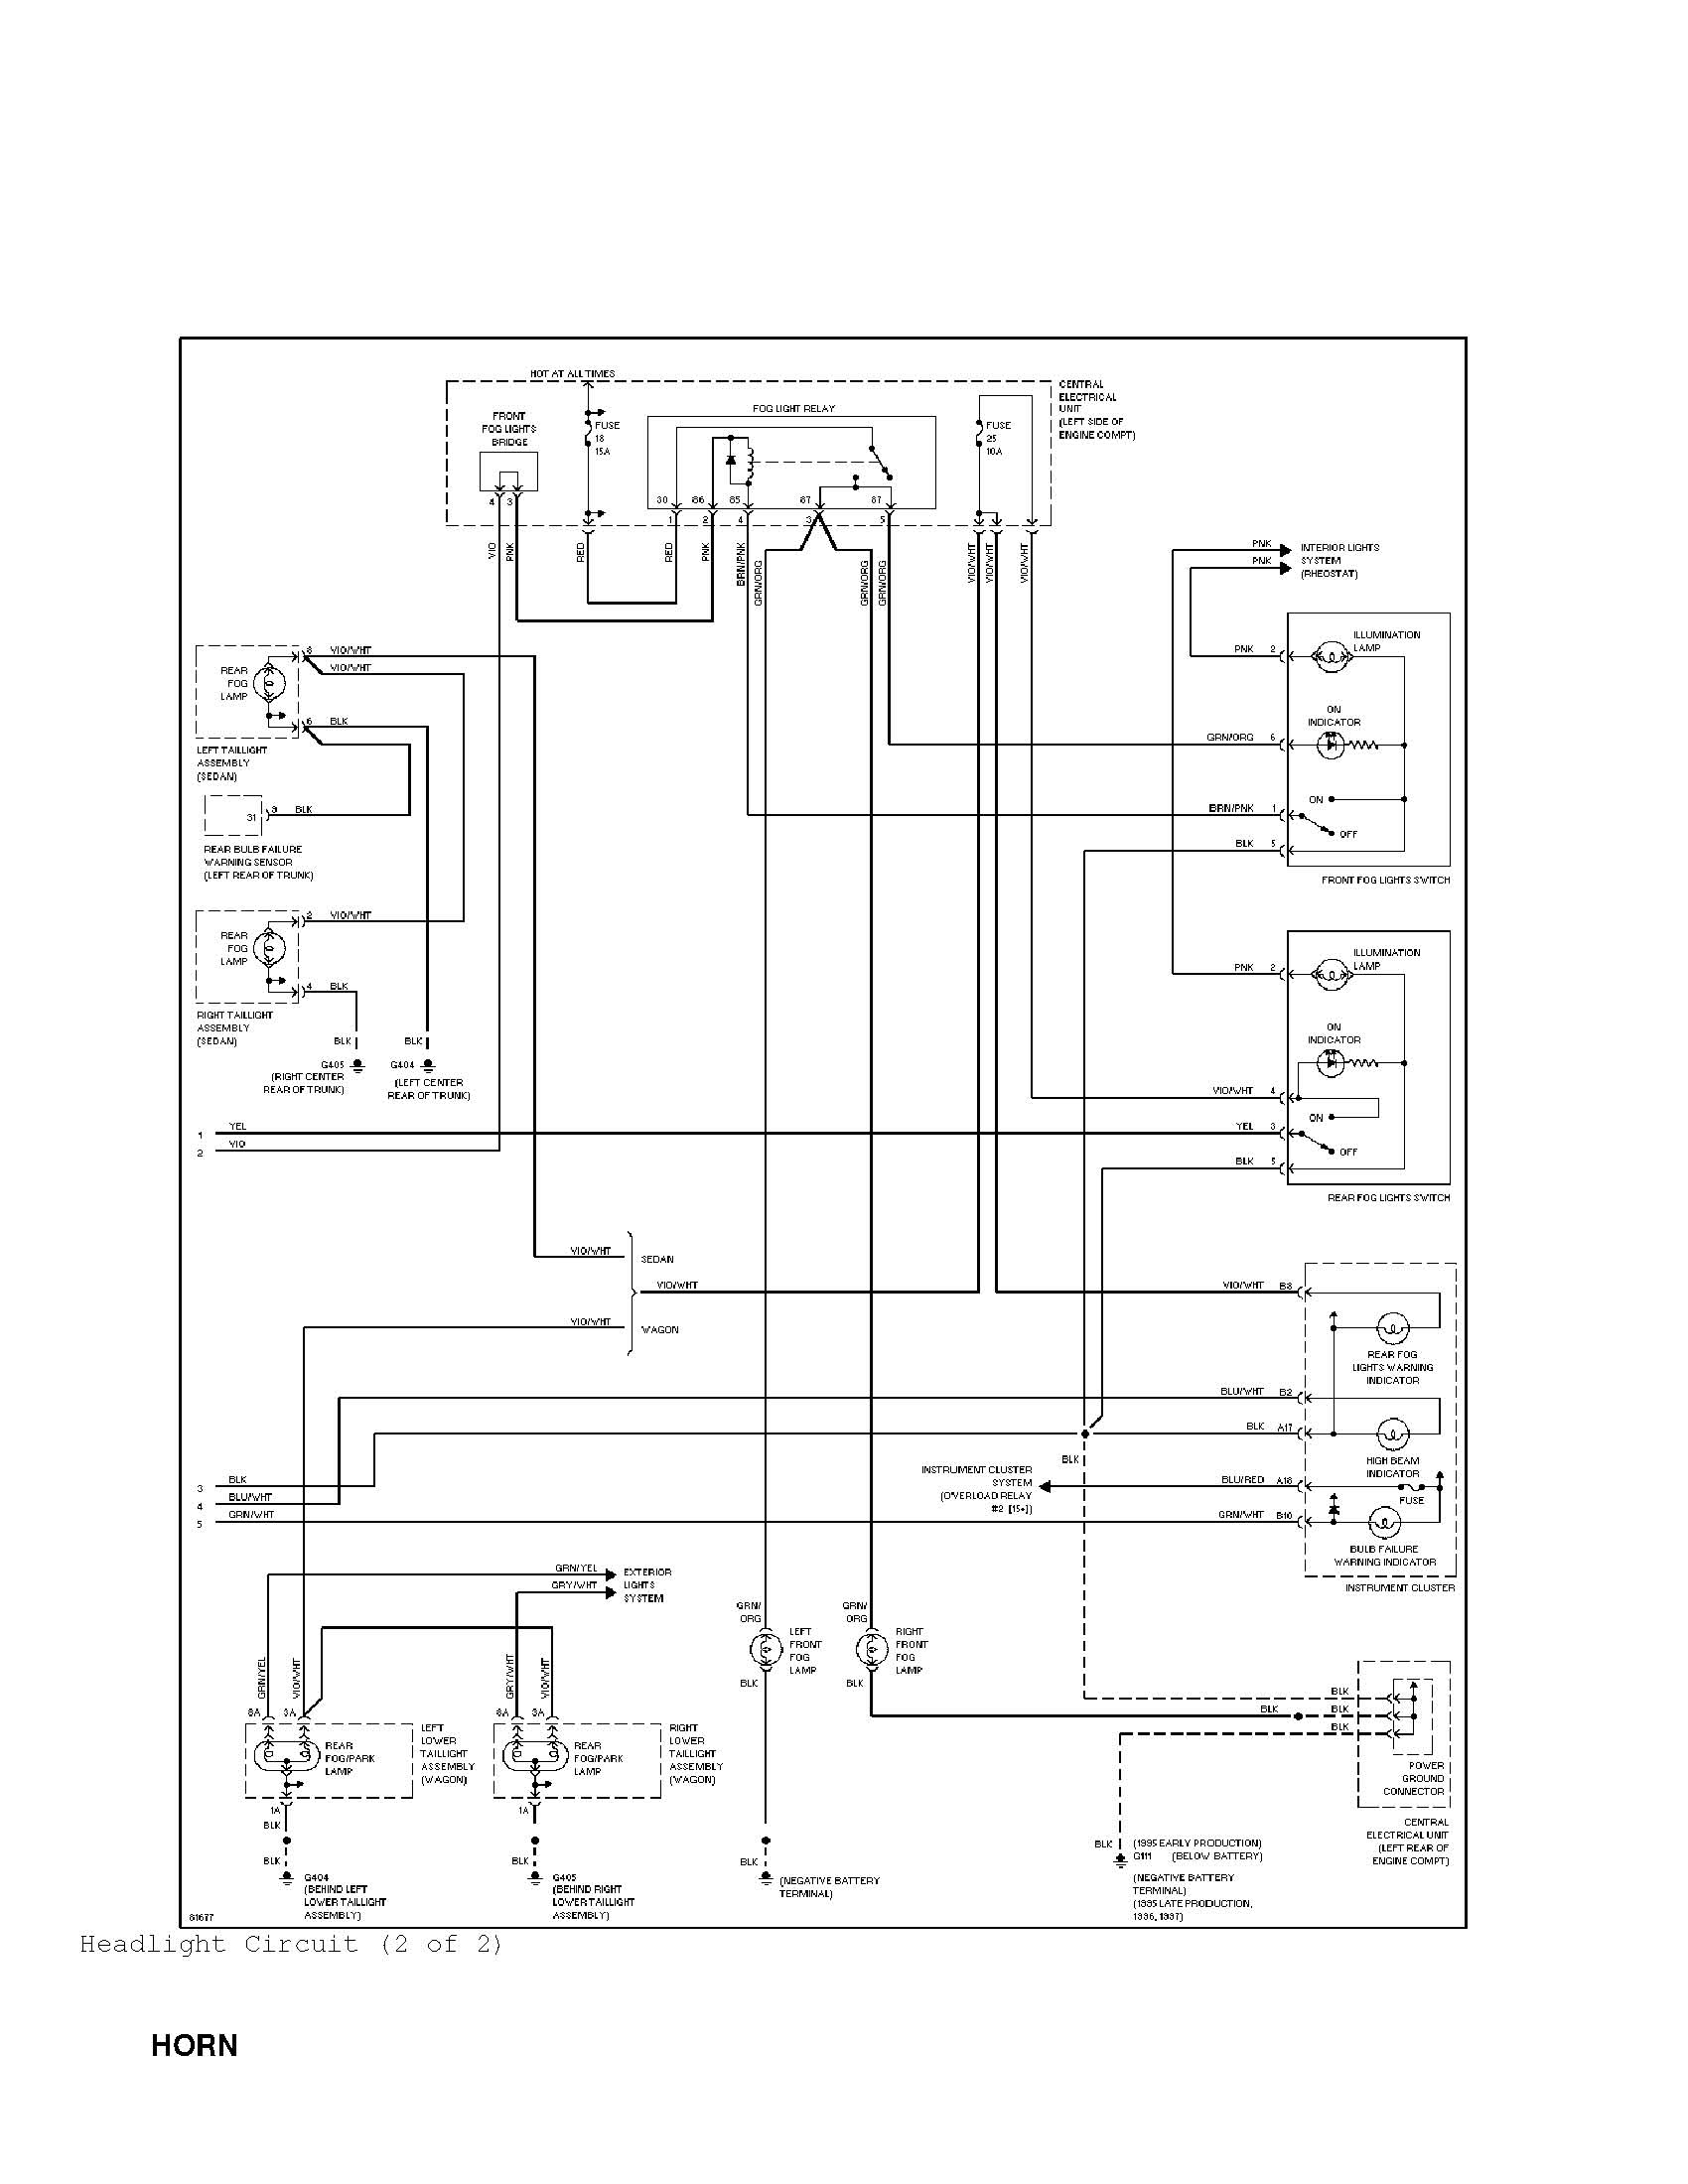 Volvo 850 Headlight Wiring Diagram Real Engine Diagrams V70 Fog Light Harness Relays 1996 Relay